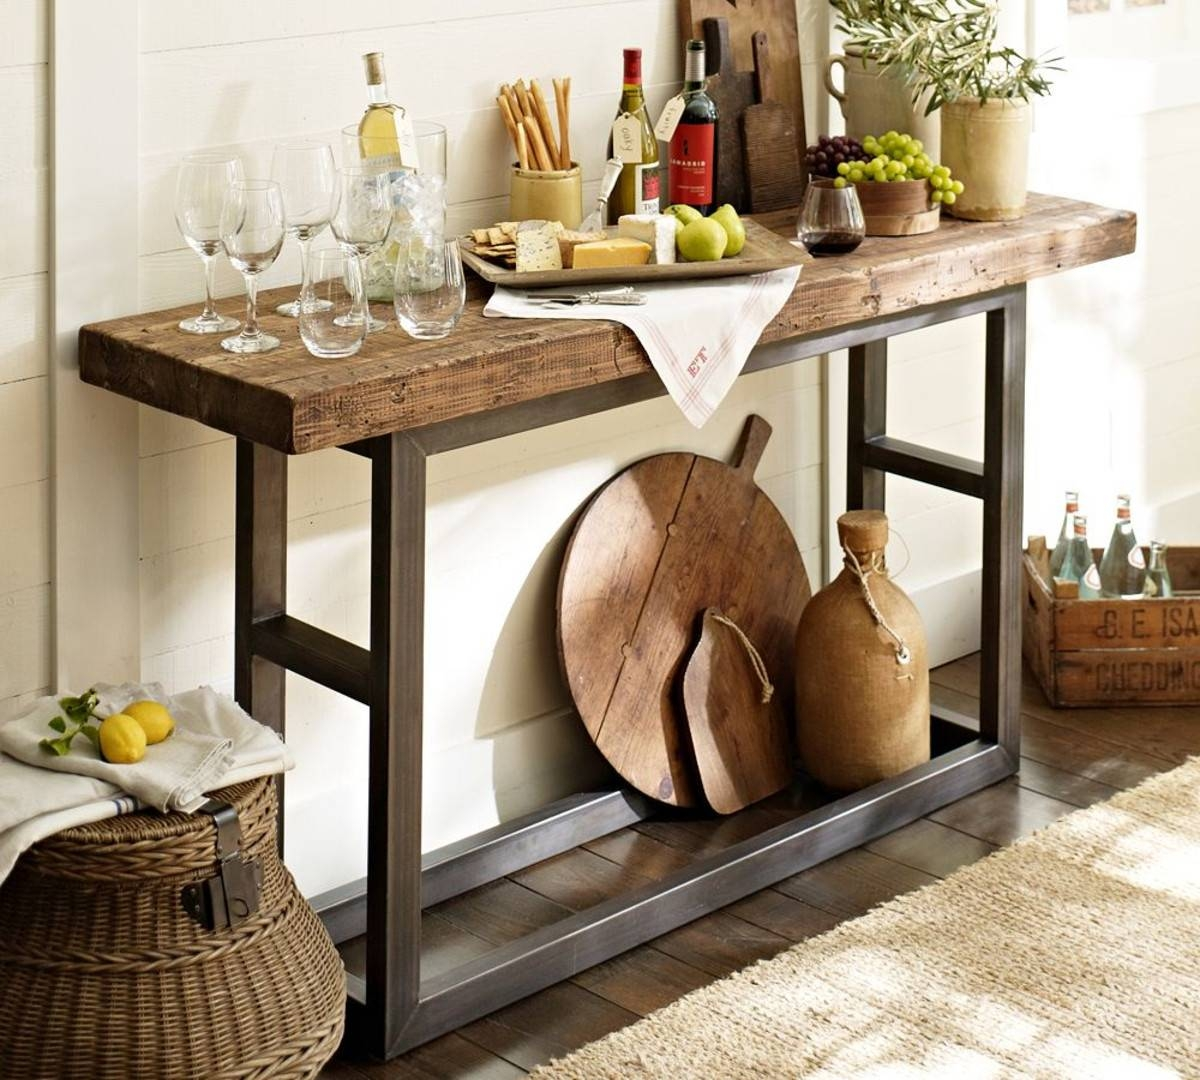 Reclaimed Wood Griffin Coffee Table — Sogocountry Design : Perfect pertaining to Griffin Coffee Tables (Image 24 of 30)